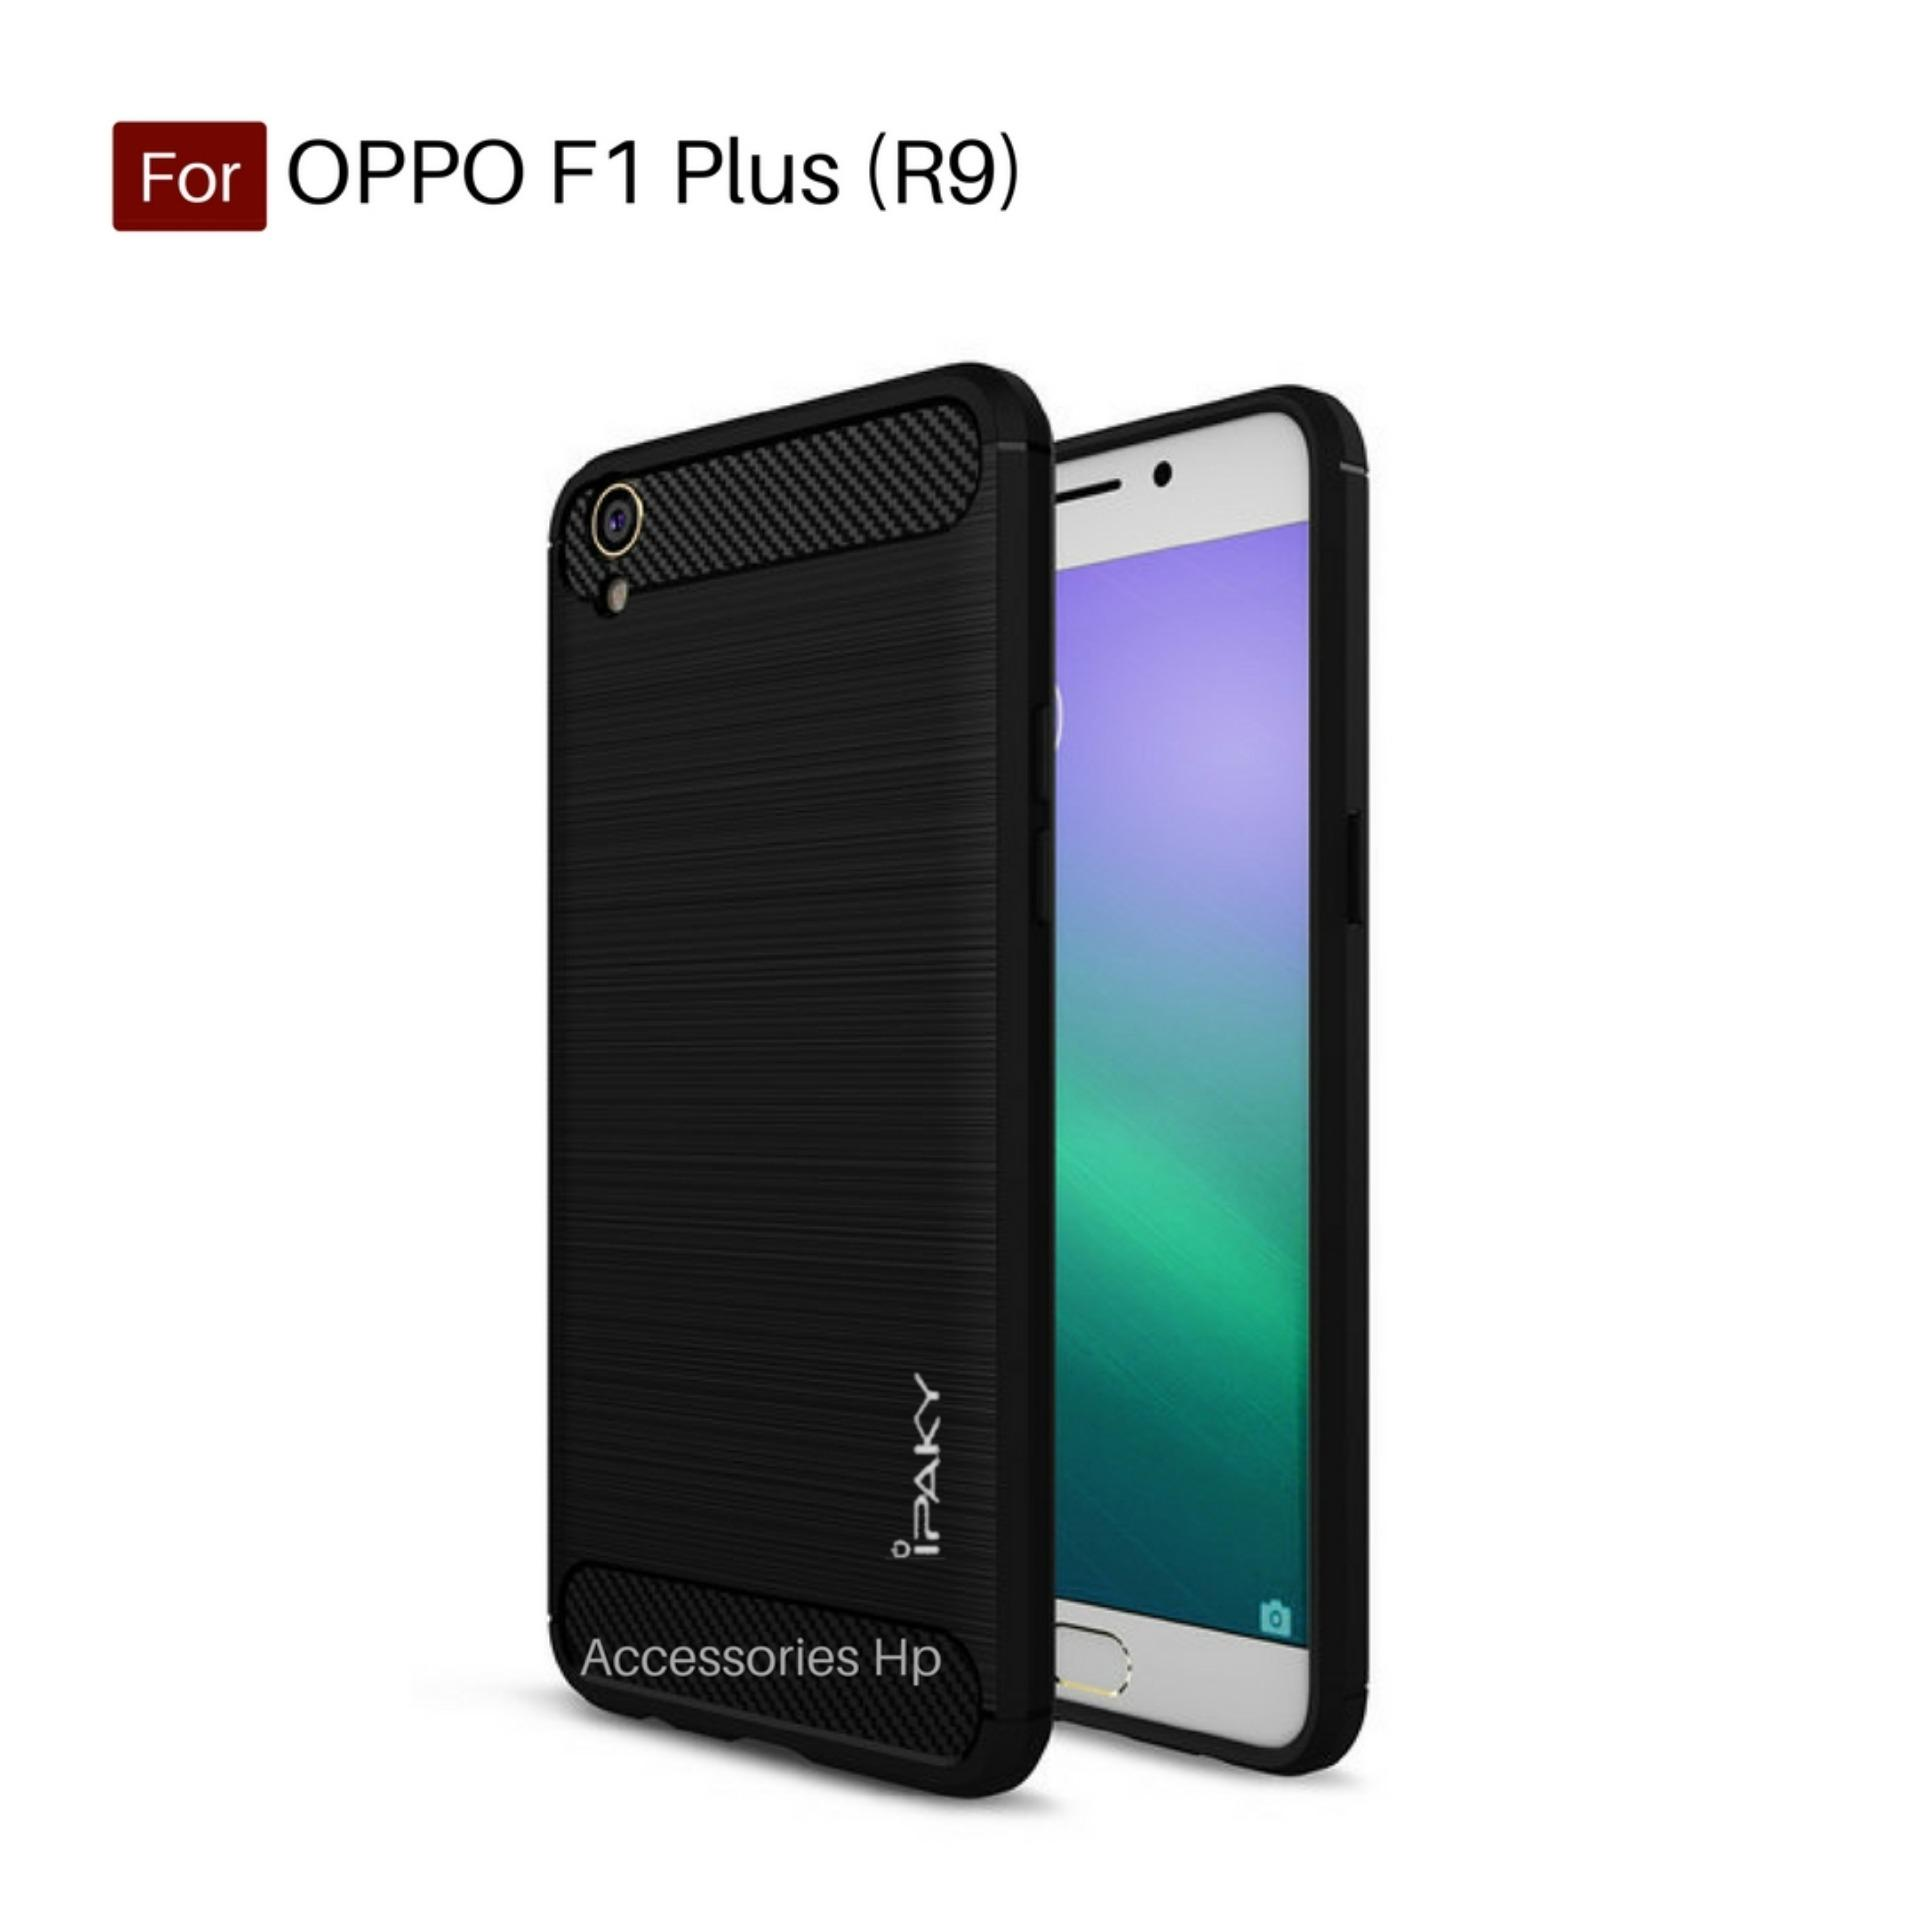 ... Dragon Silicone Armor Full back cover case for. Source · Accessories HP Premium Quality Carbon Shockproof Hybrid Case For OPPO F1 Plus (R9) -